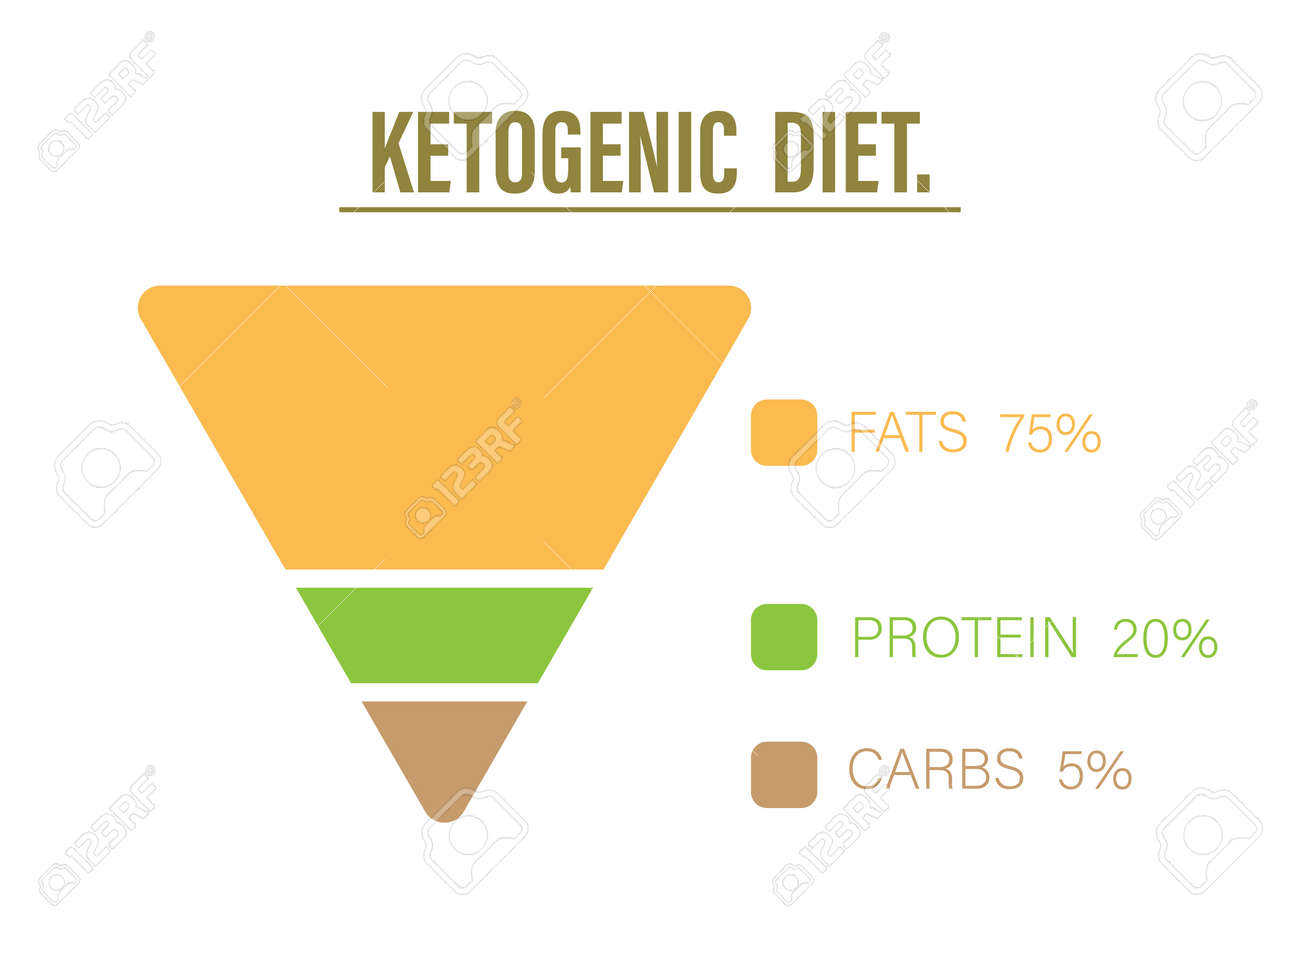 Ketogenic diet food pyramid to show proportion 75% healthy fat, 20% protein and 5% carbohydrate, keto diet infographic or diagram, lose weight trend, Vector illustration art design for healthy concept - 158656048